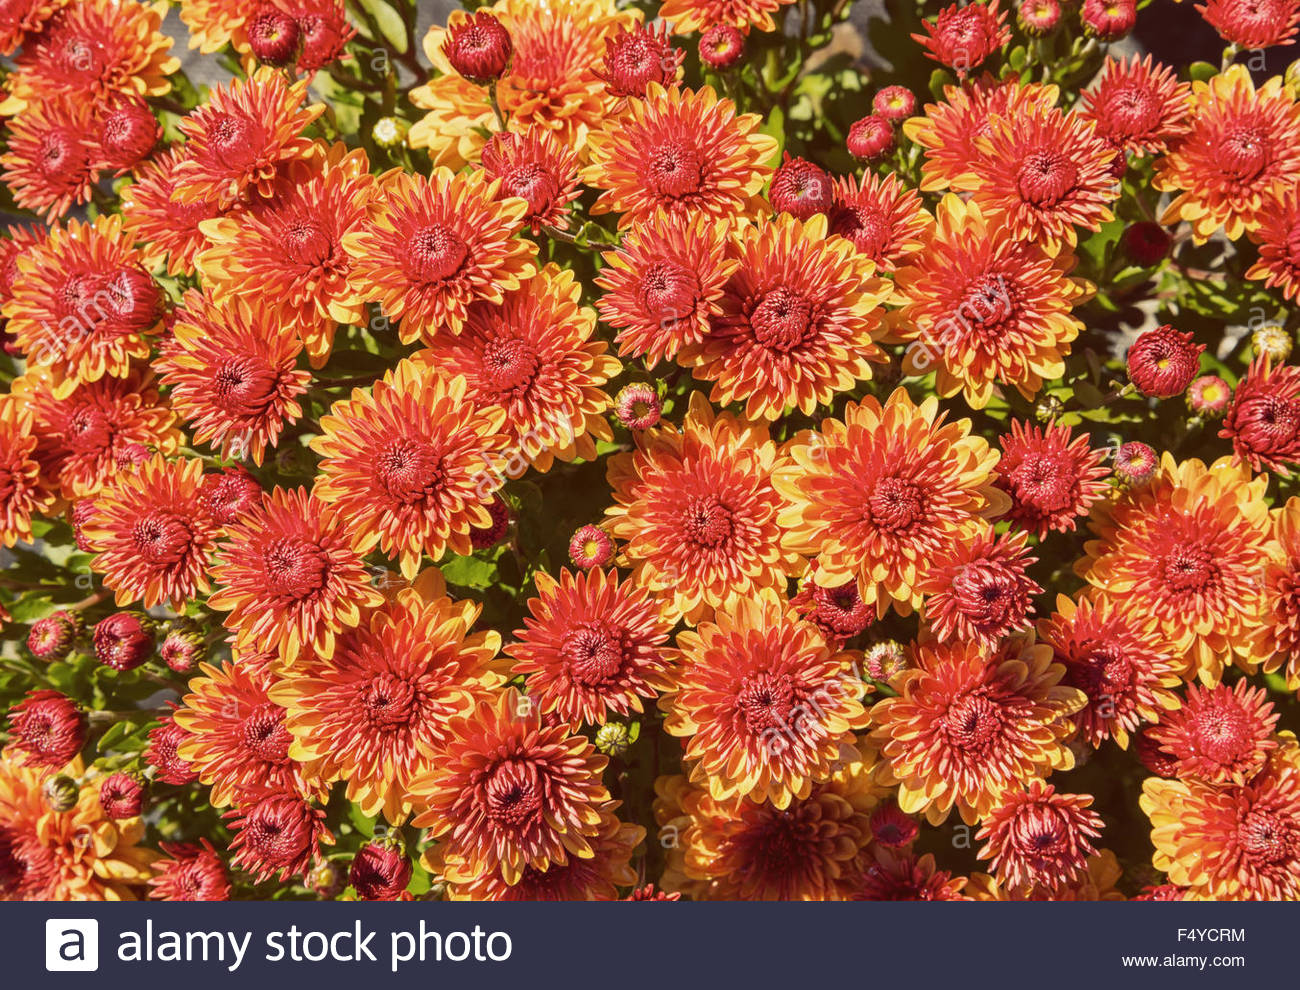 Autumn Mums or Chrysanthemums for flower background Stock Photo 1300x990